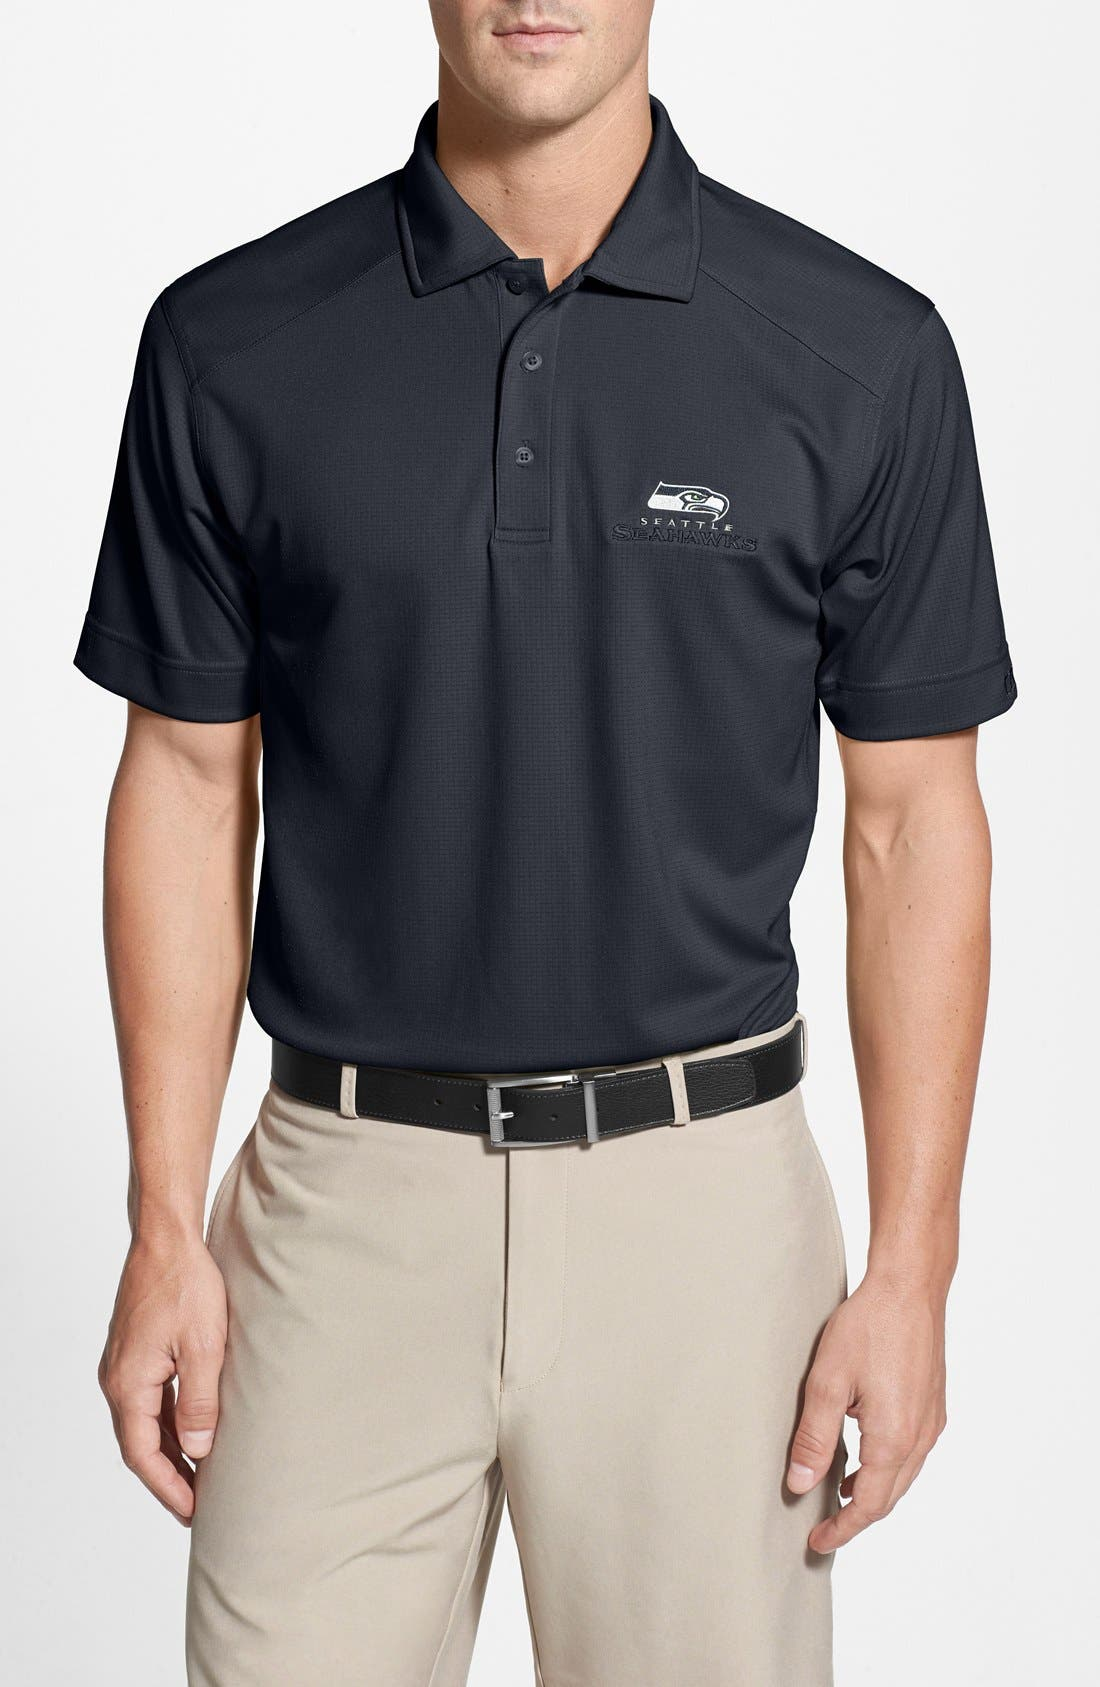 Cutter & Buck 'Seattle Seahawks - Genre' DryTec Moisture Wicking Polo (Big & Tall)